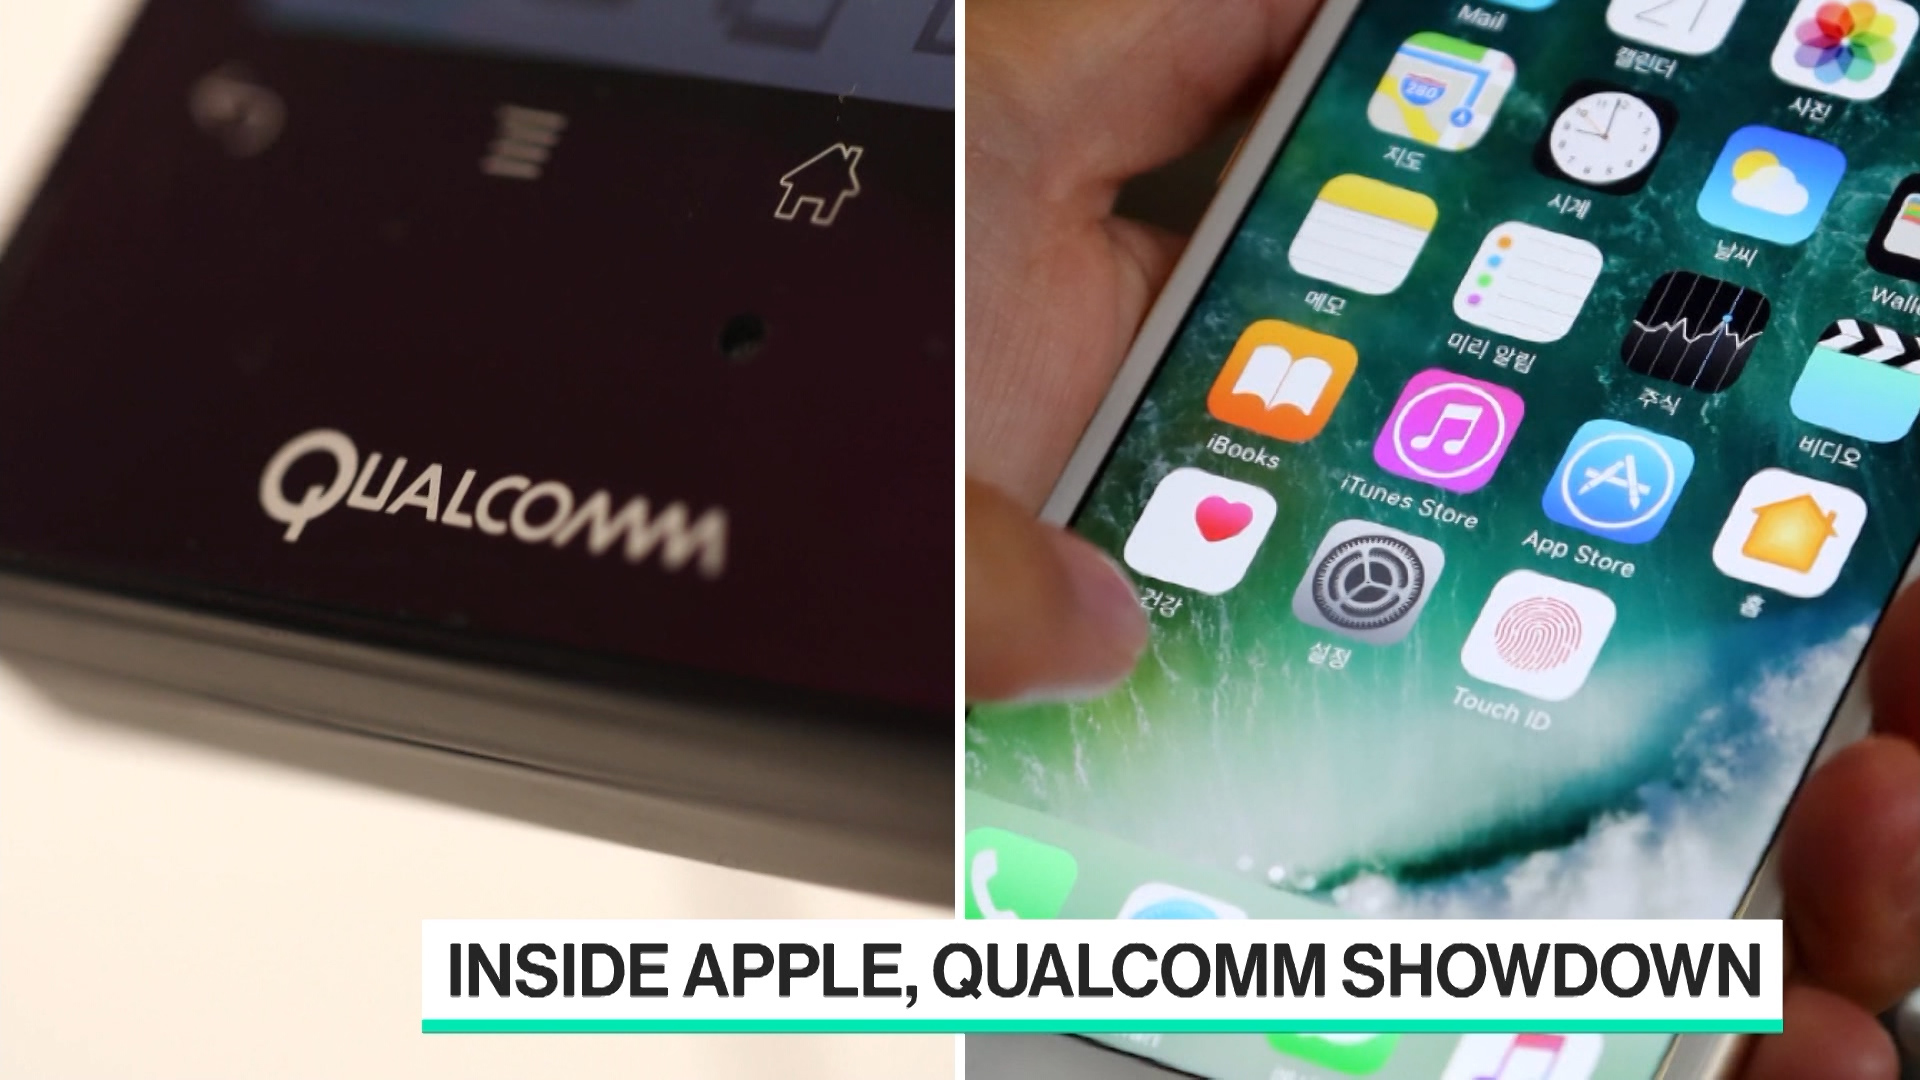 Software Was Sticking Point in Apple-Qualcomm Spat, Executive Emails Suggest